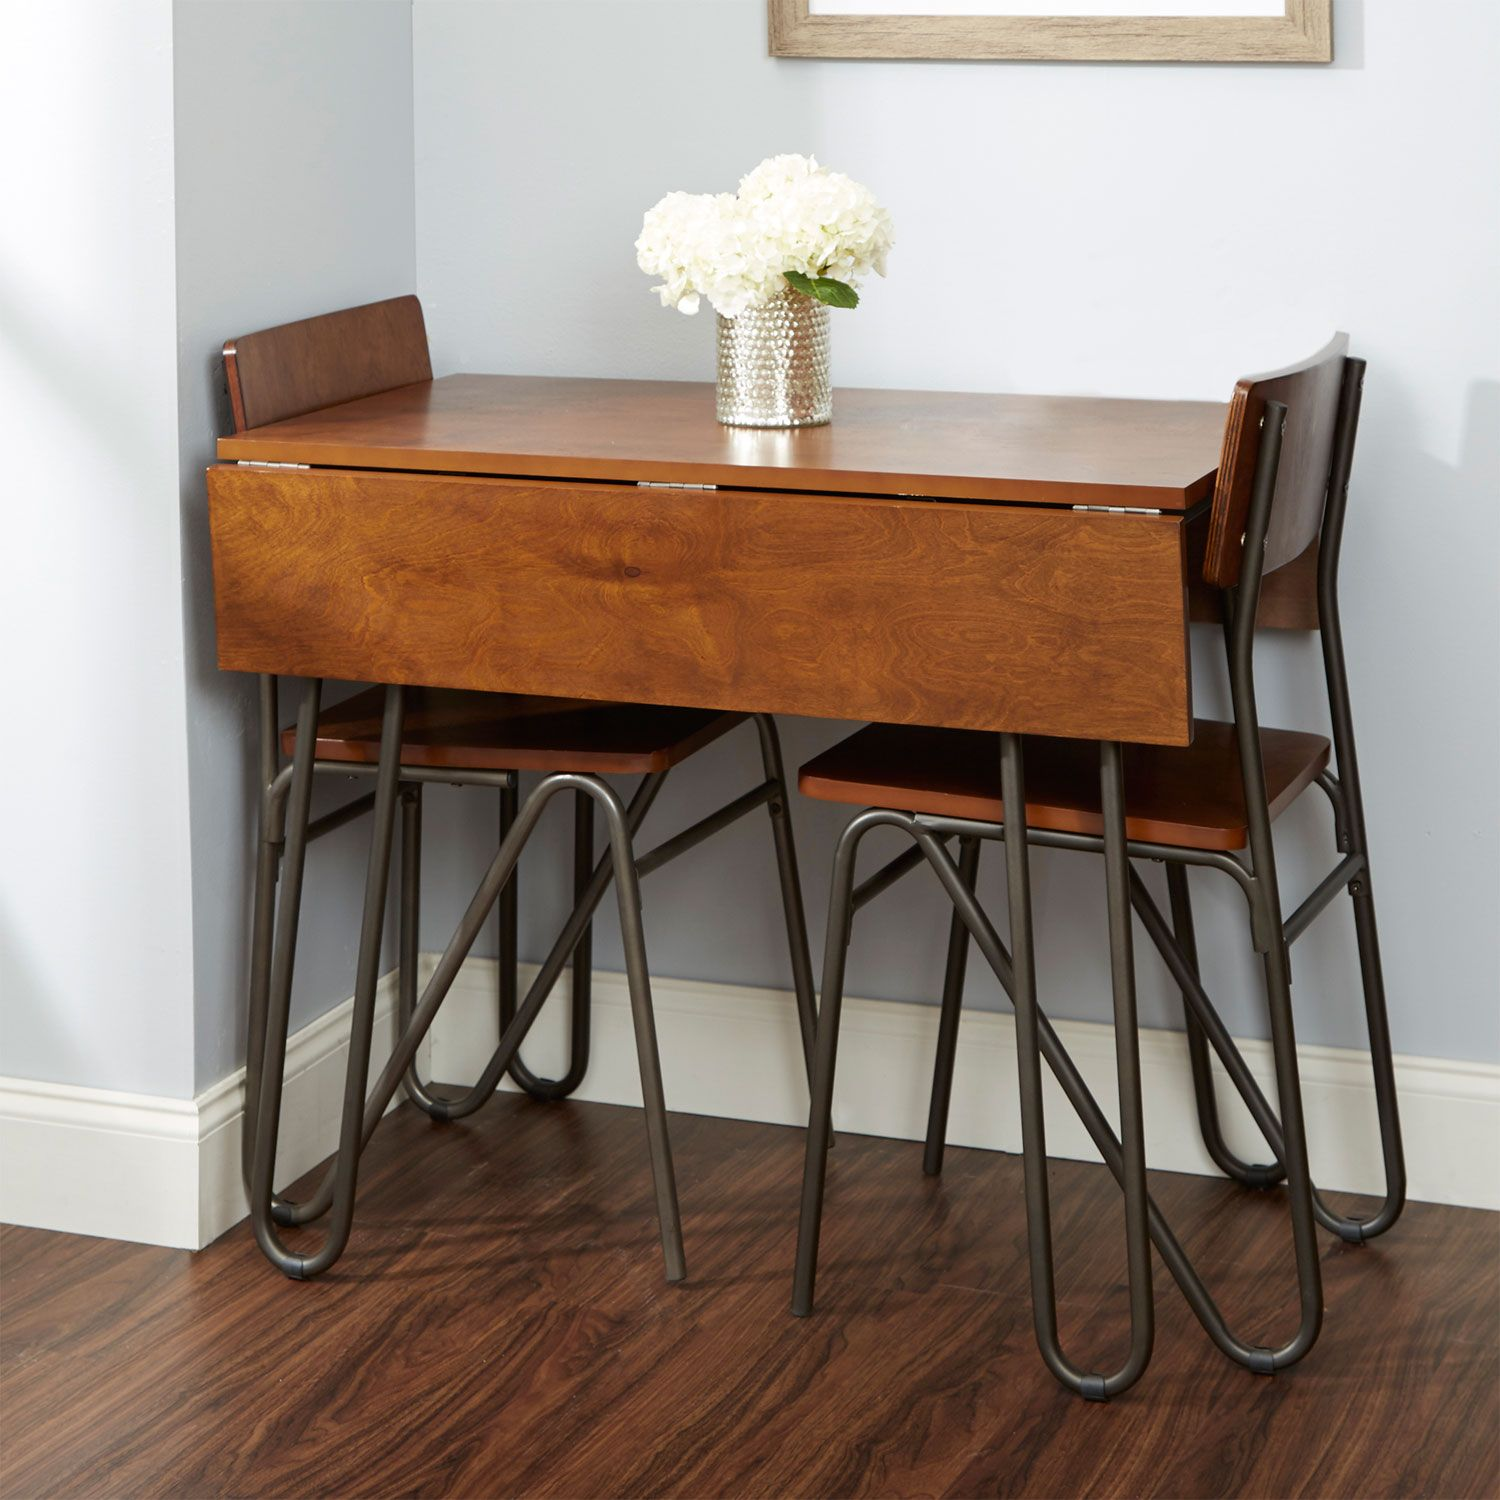 North Oaks Henry Drop Leaf Table With Hairpin Legs Drop Leaf